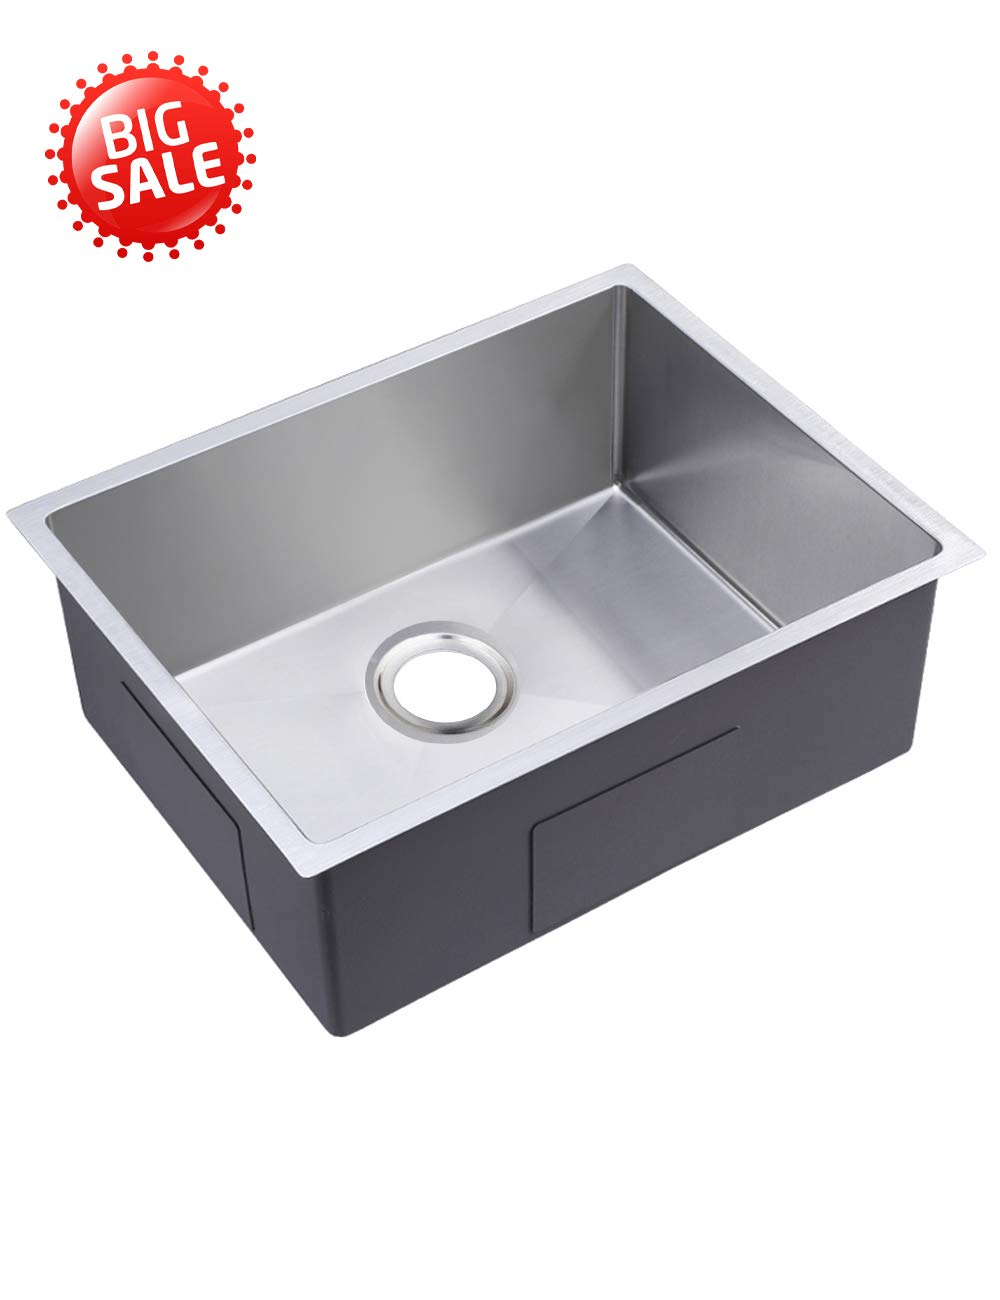 30'' Large Space Kitchen Sink Handmade Stainless Steel Sink 18 Guage, Single Bowl, Under Mount Kitchen Sink with Rollup Dish Rack (30'')